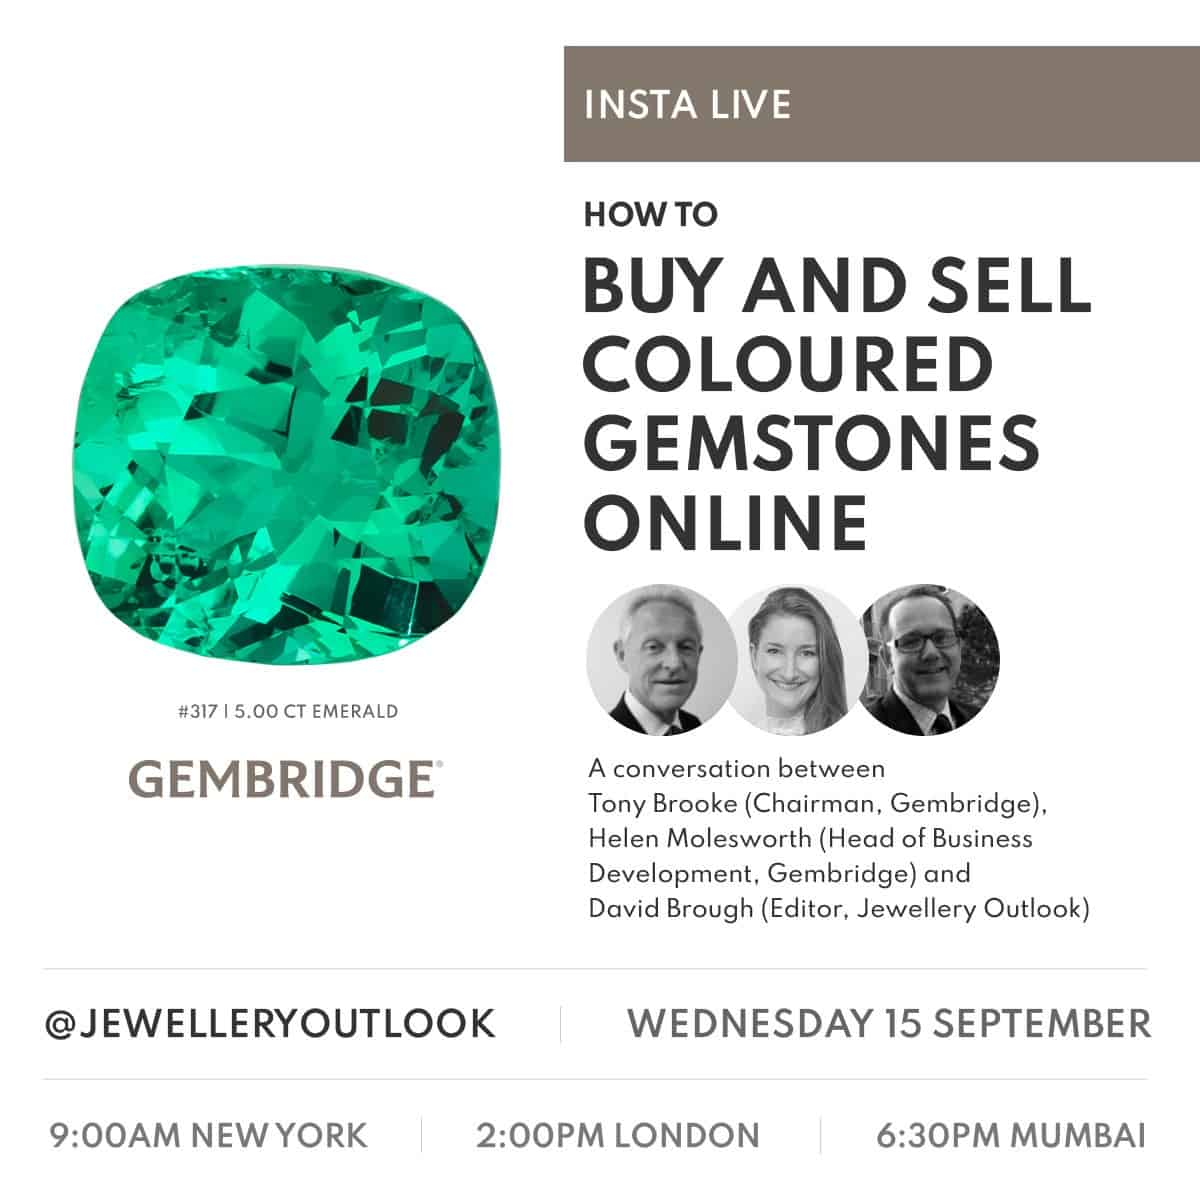 INSTA LIVE WRAPUP – Gembridge gives tips on how to buy and sell coloured gemstones online